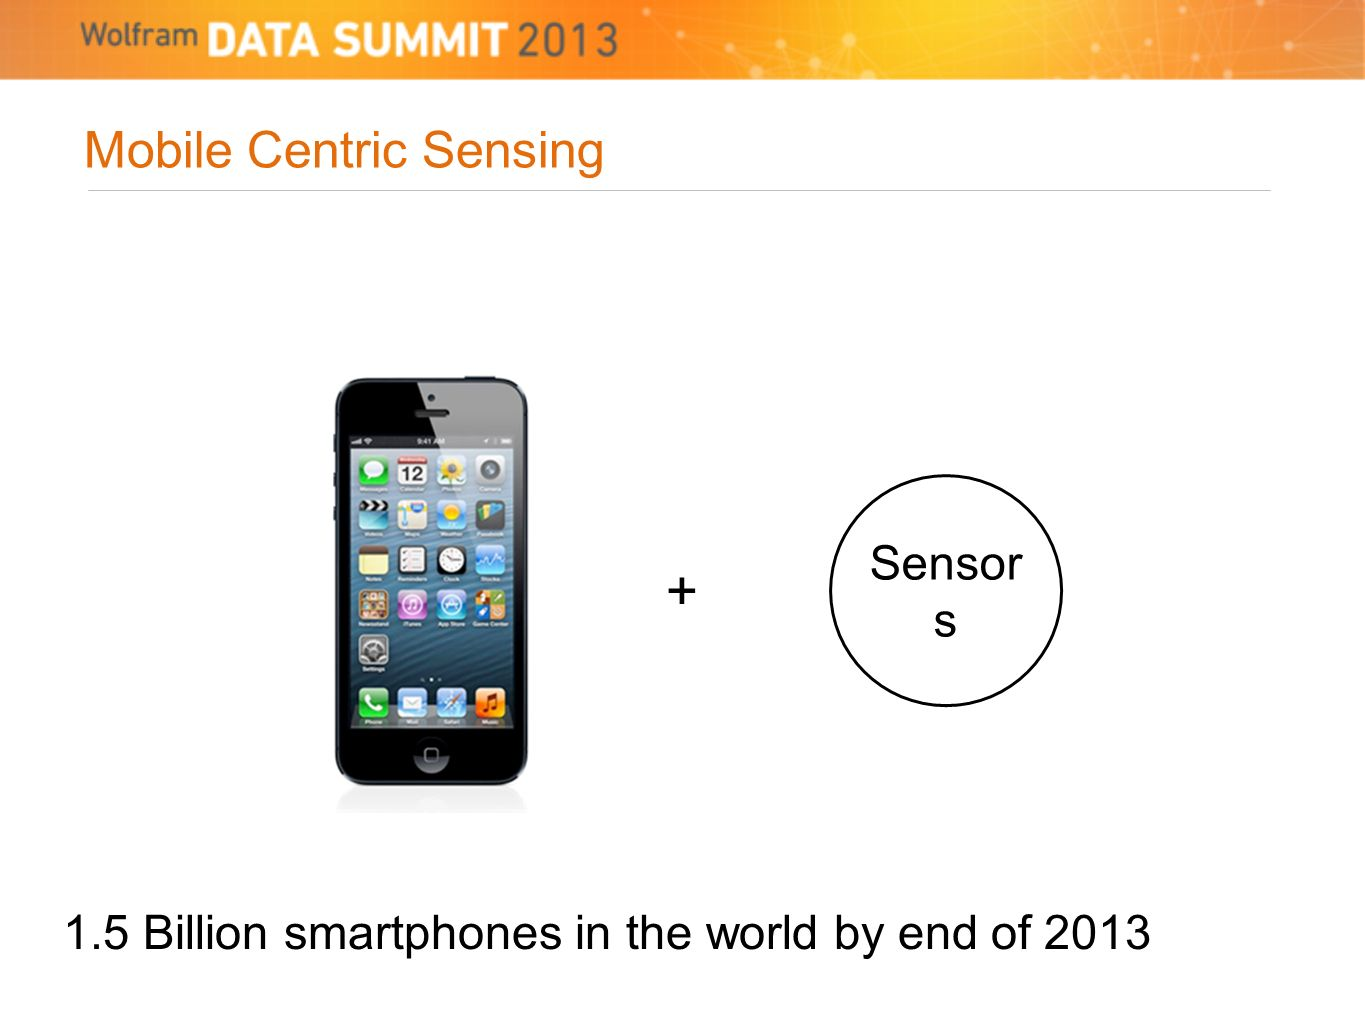 Mobile Centric Sensing Sensor s + 1.5 Billion smartphones in the world by end of 2013